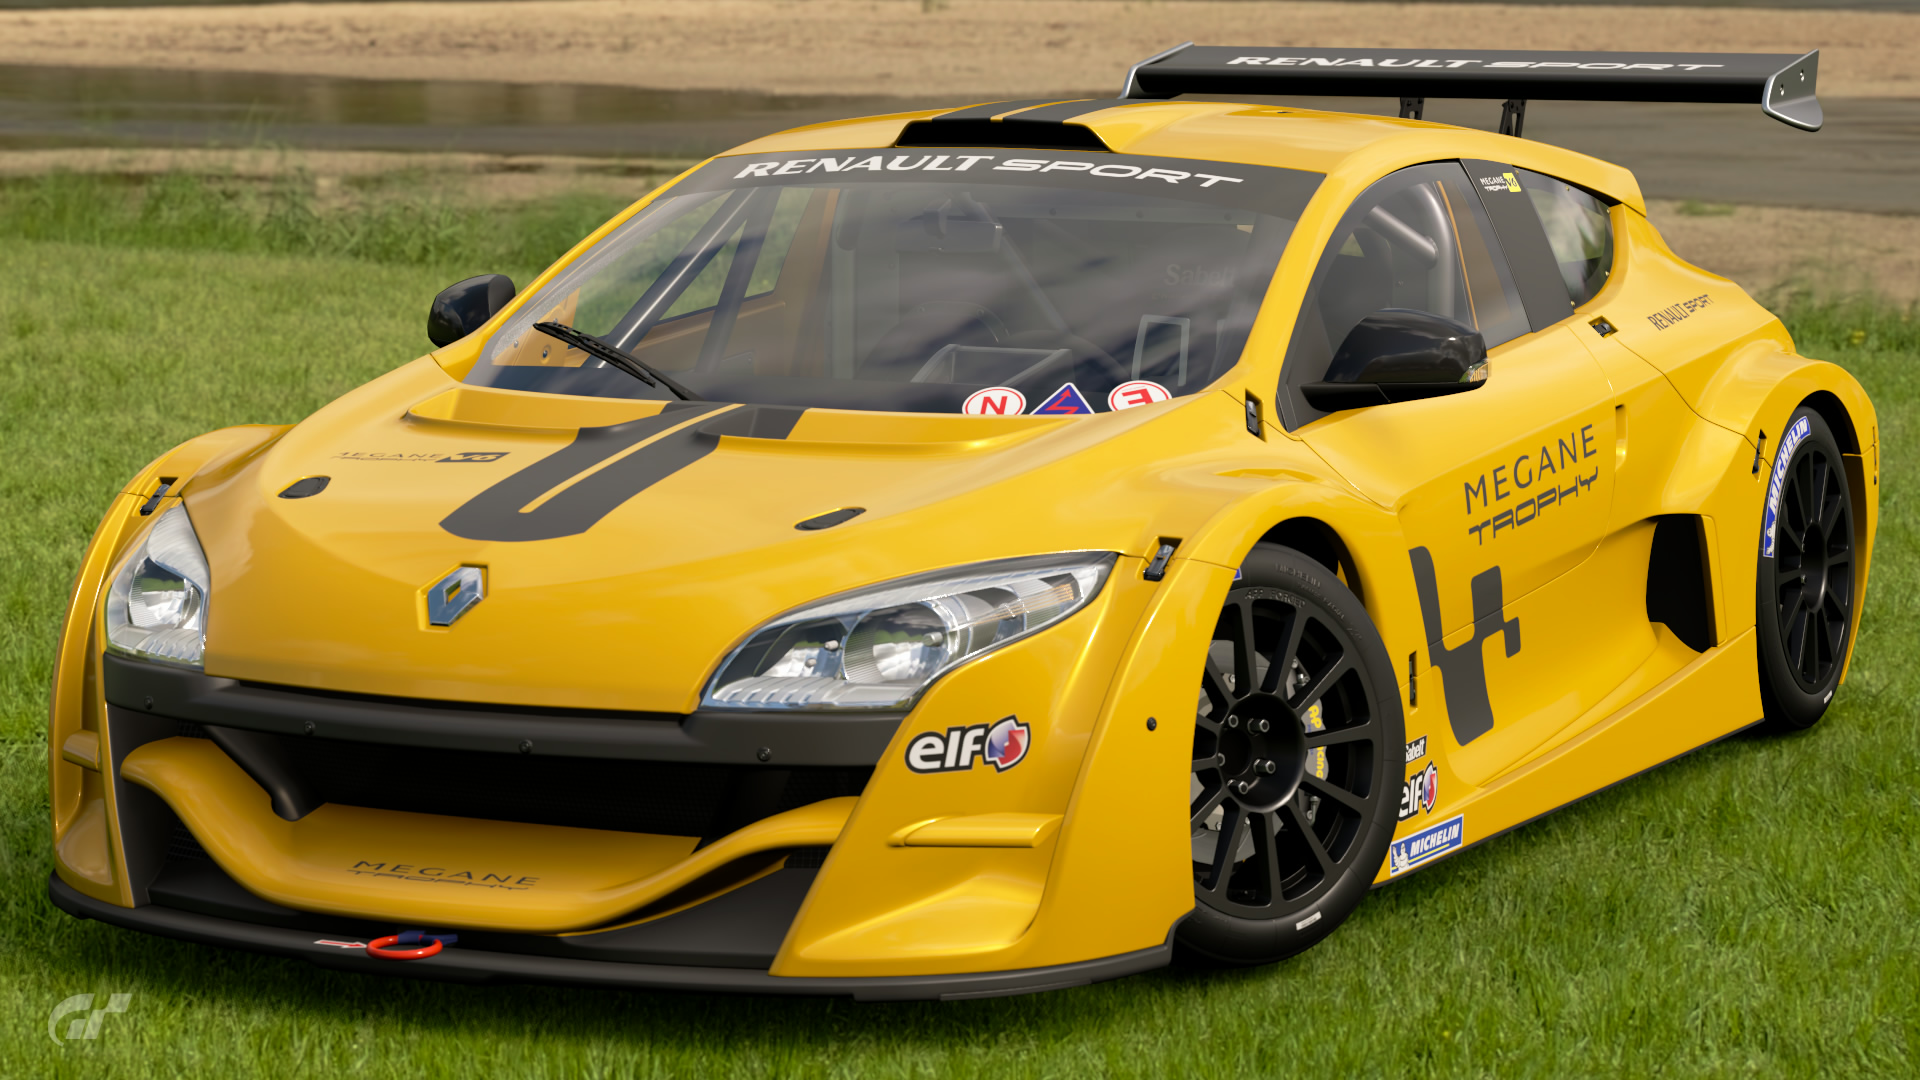 renault sport m gane trophy 39 11 gran turismo wiki fandom powered by wikia. Black Bedroom Furniture Sets. Home Design Ideas